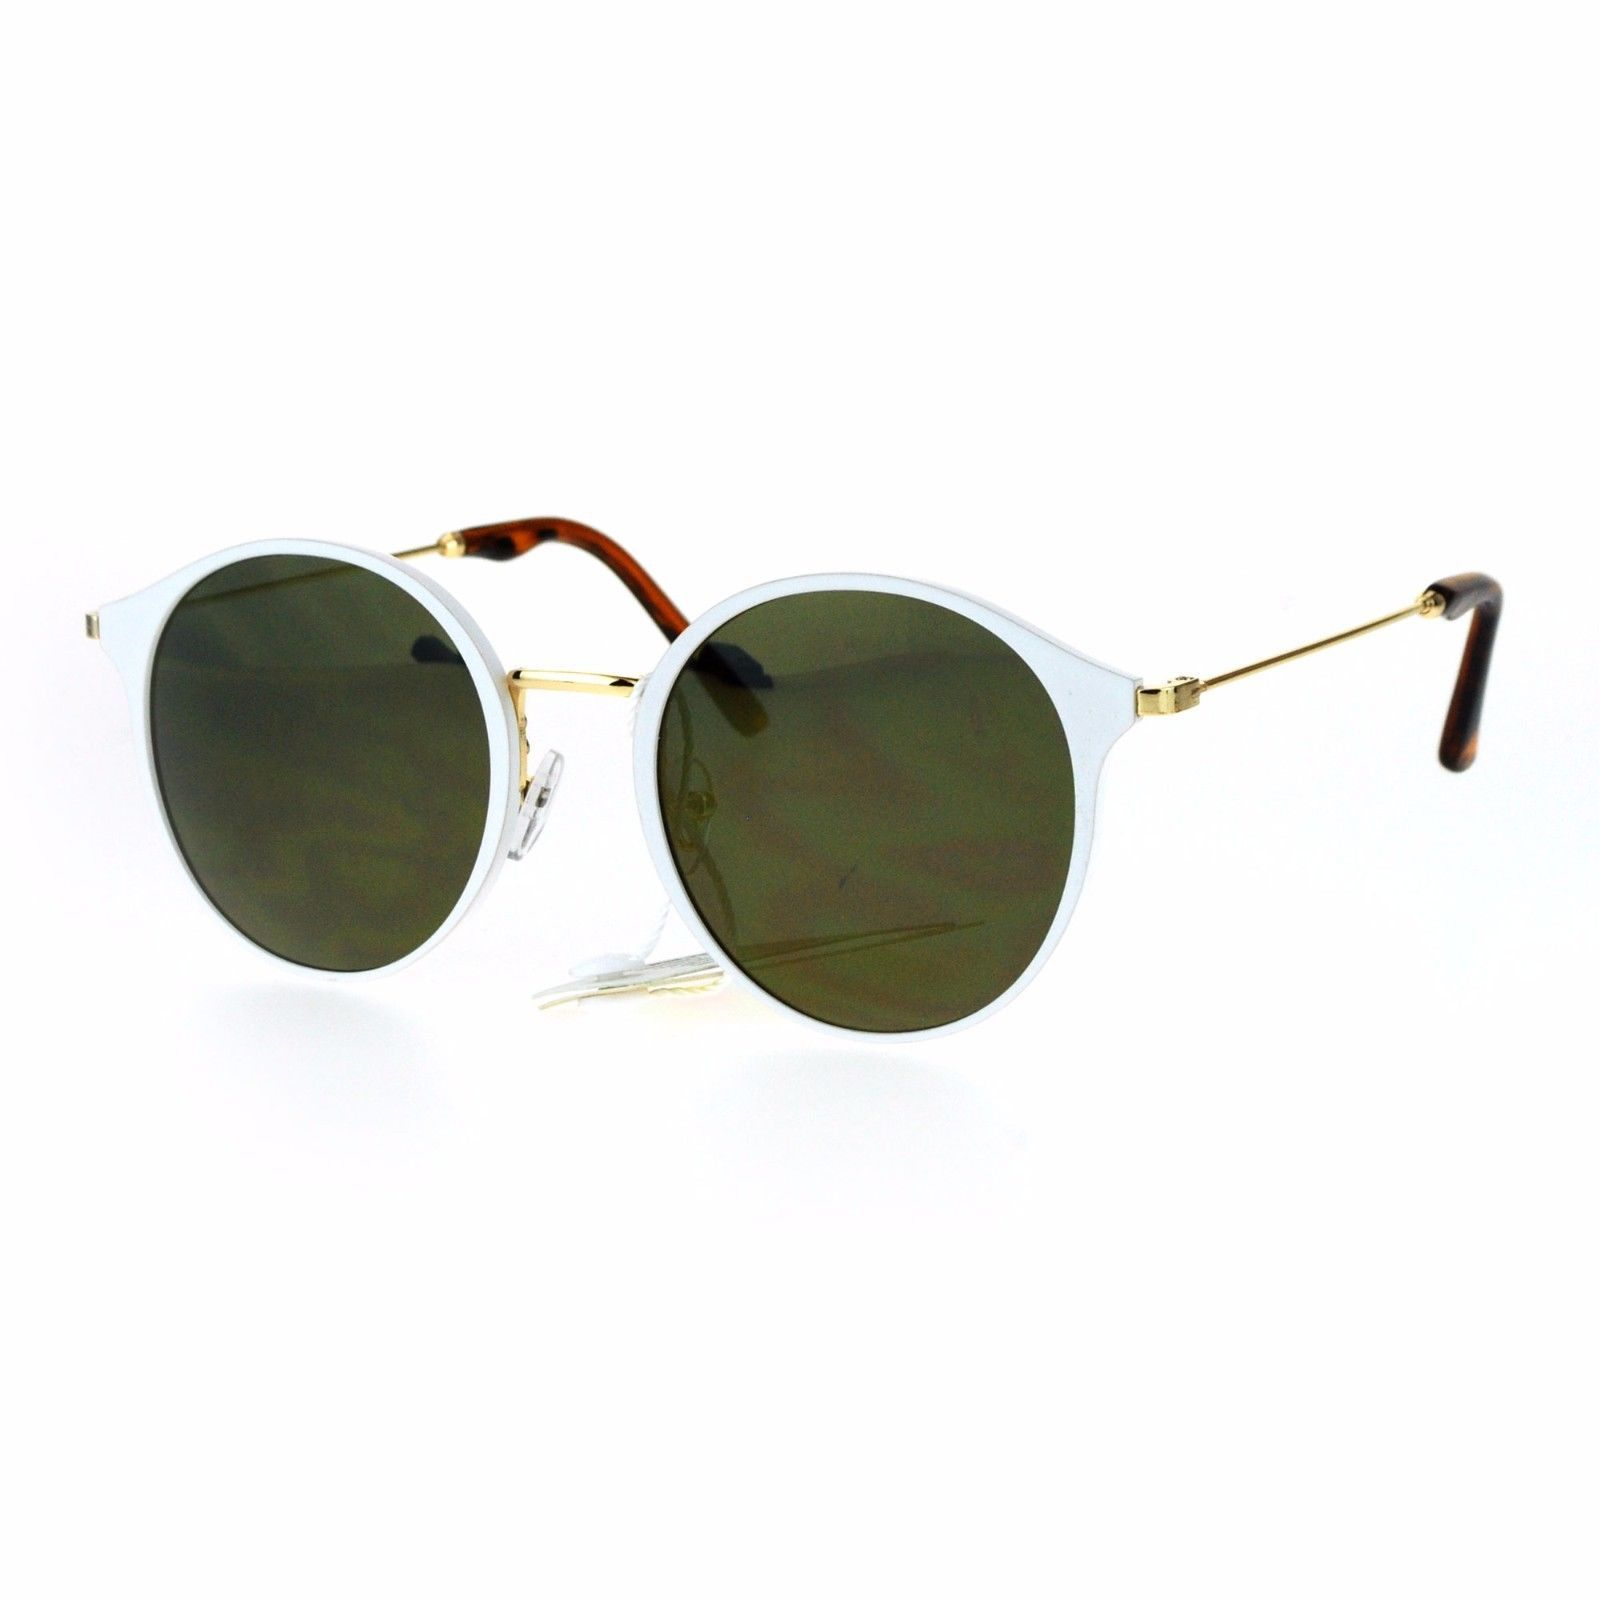 Womens Fashion Sunglasses Matted Metallic Finish Round Frame UV 400